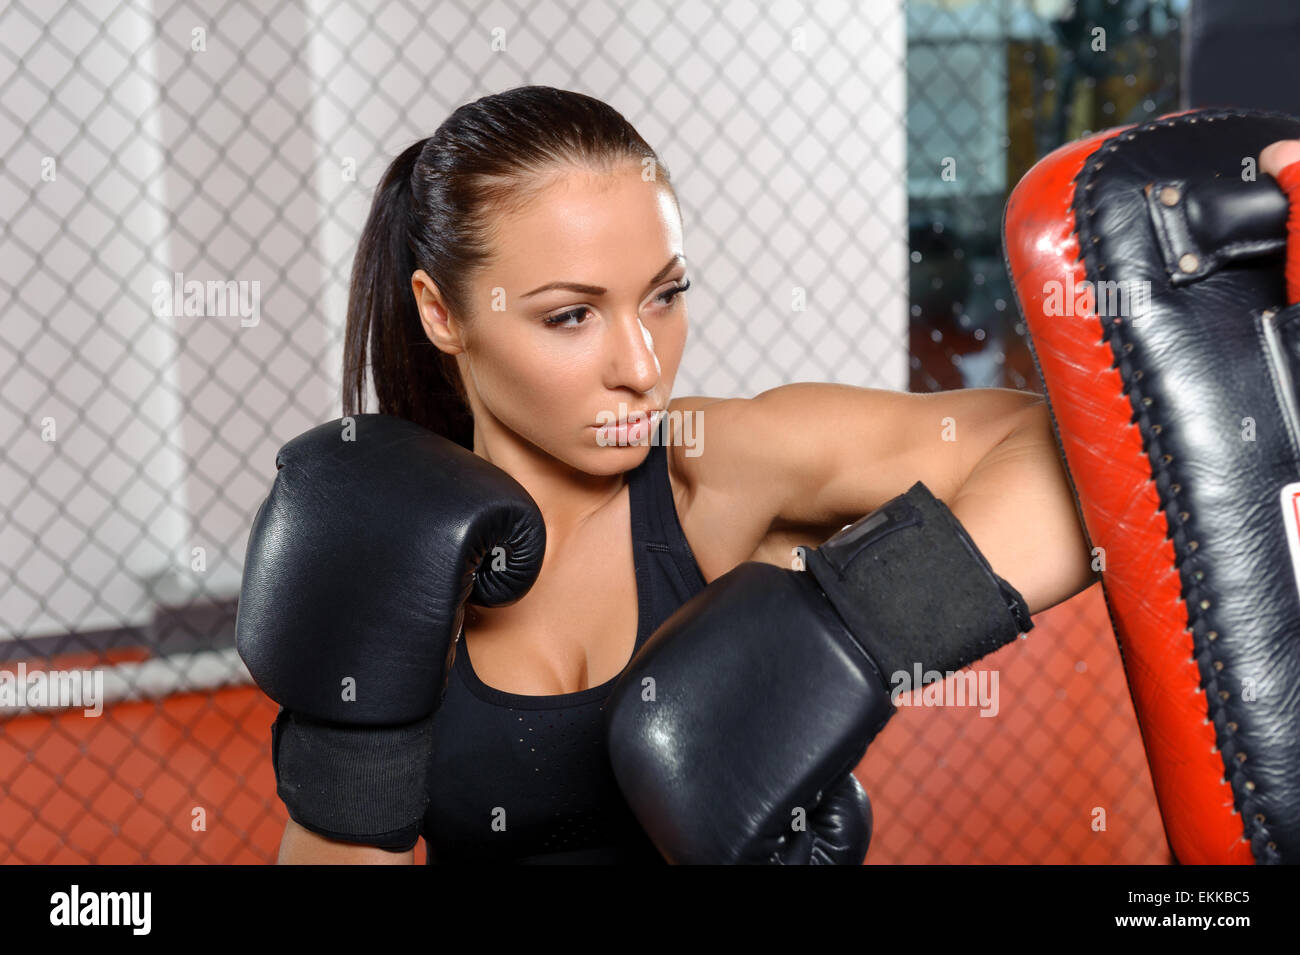 Female fighter trains in a fighting cage - Stock Image